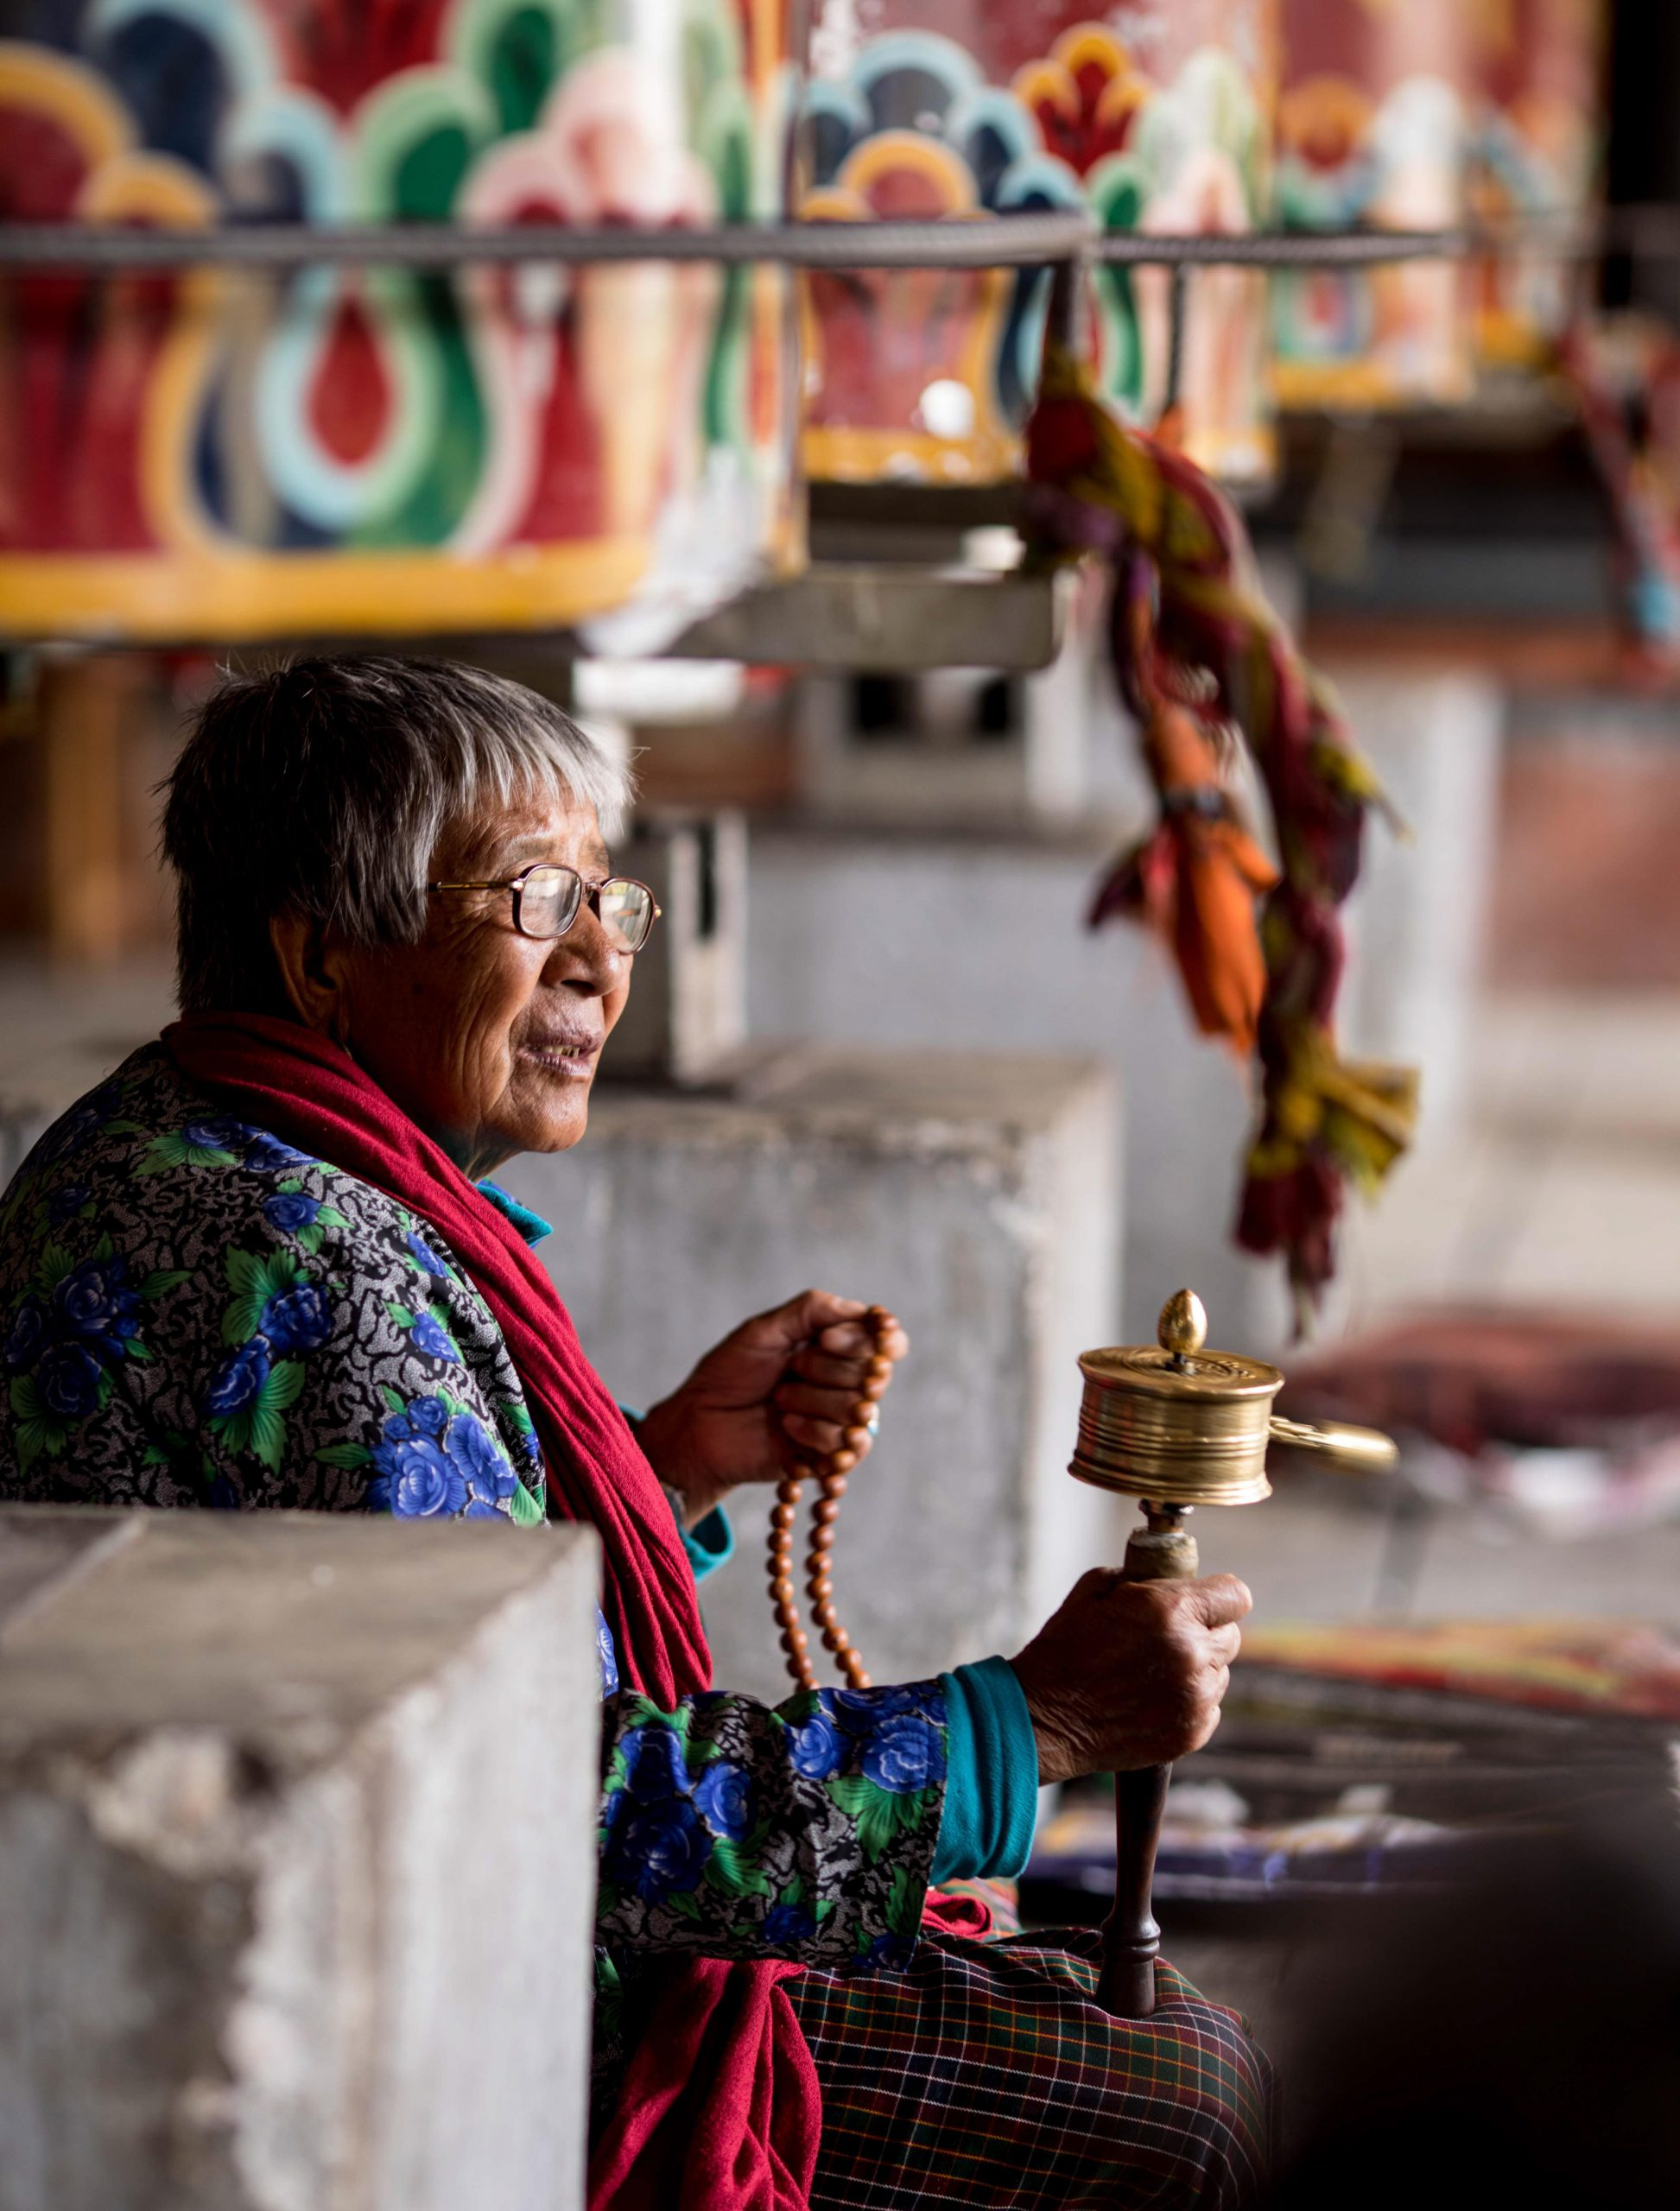 The Old Bhutanese Women with A Prayer Wheel